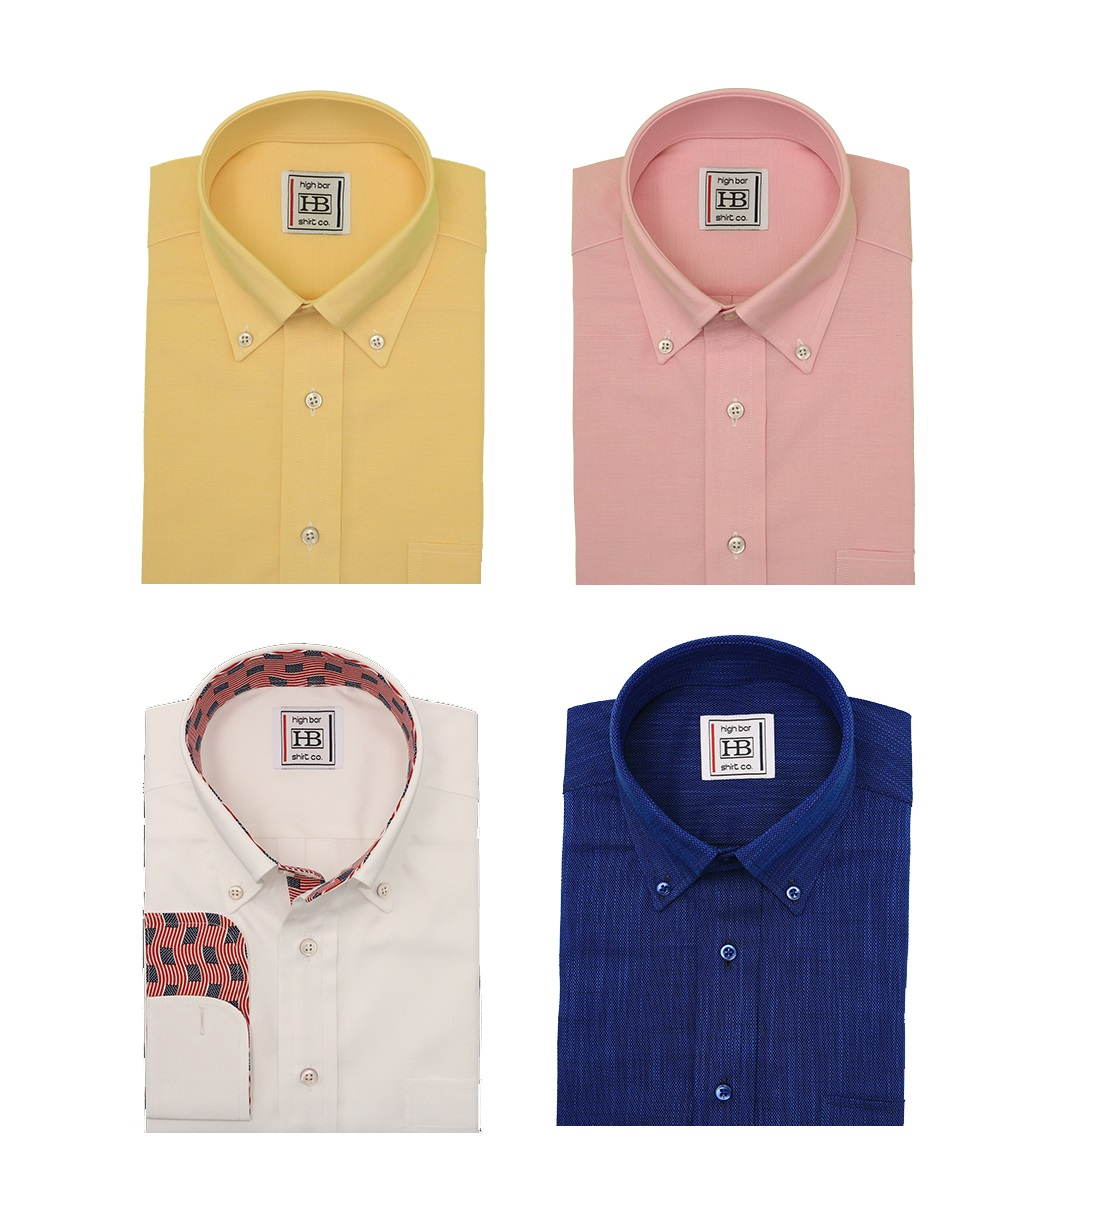 Endless variety of fabrics and many shirt styles to choose from